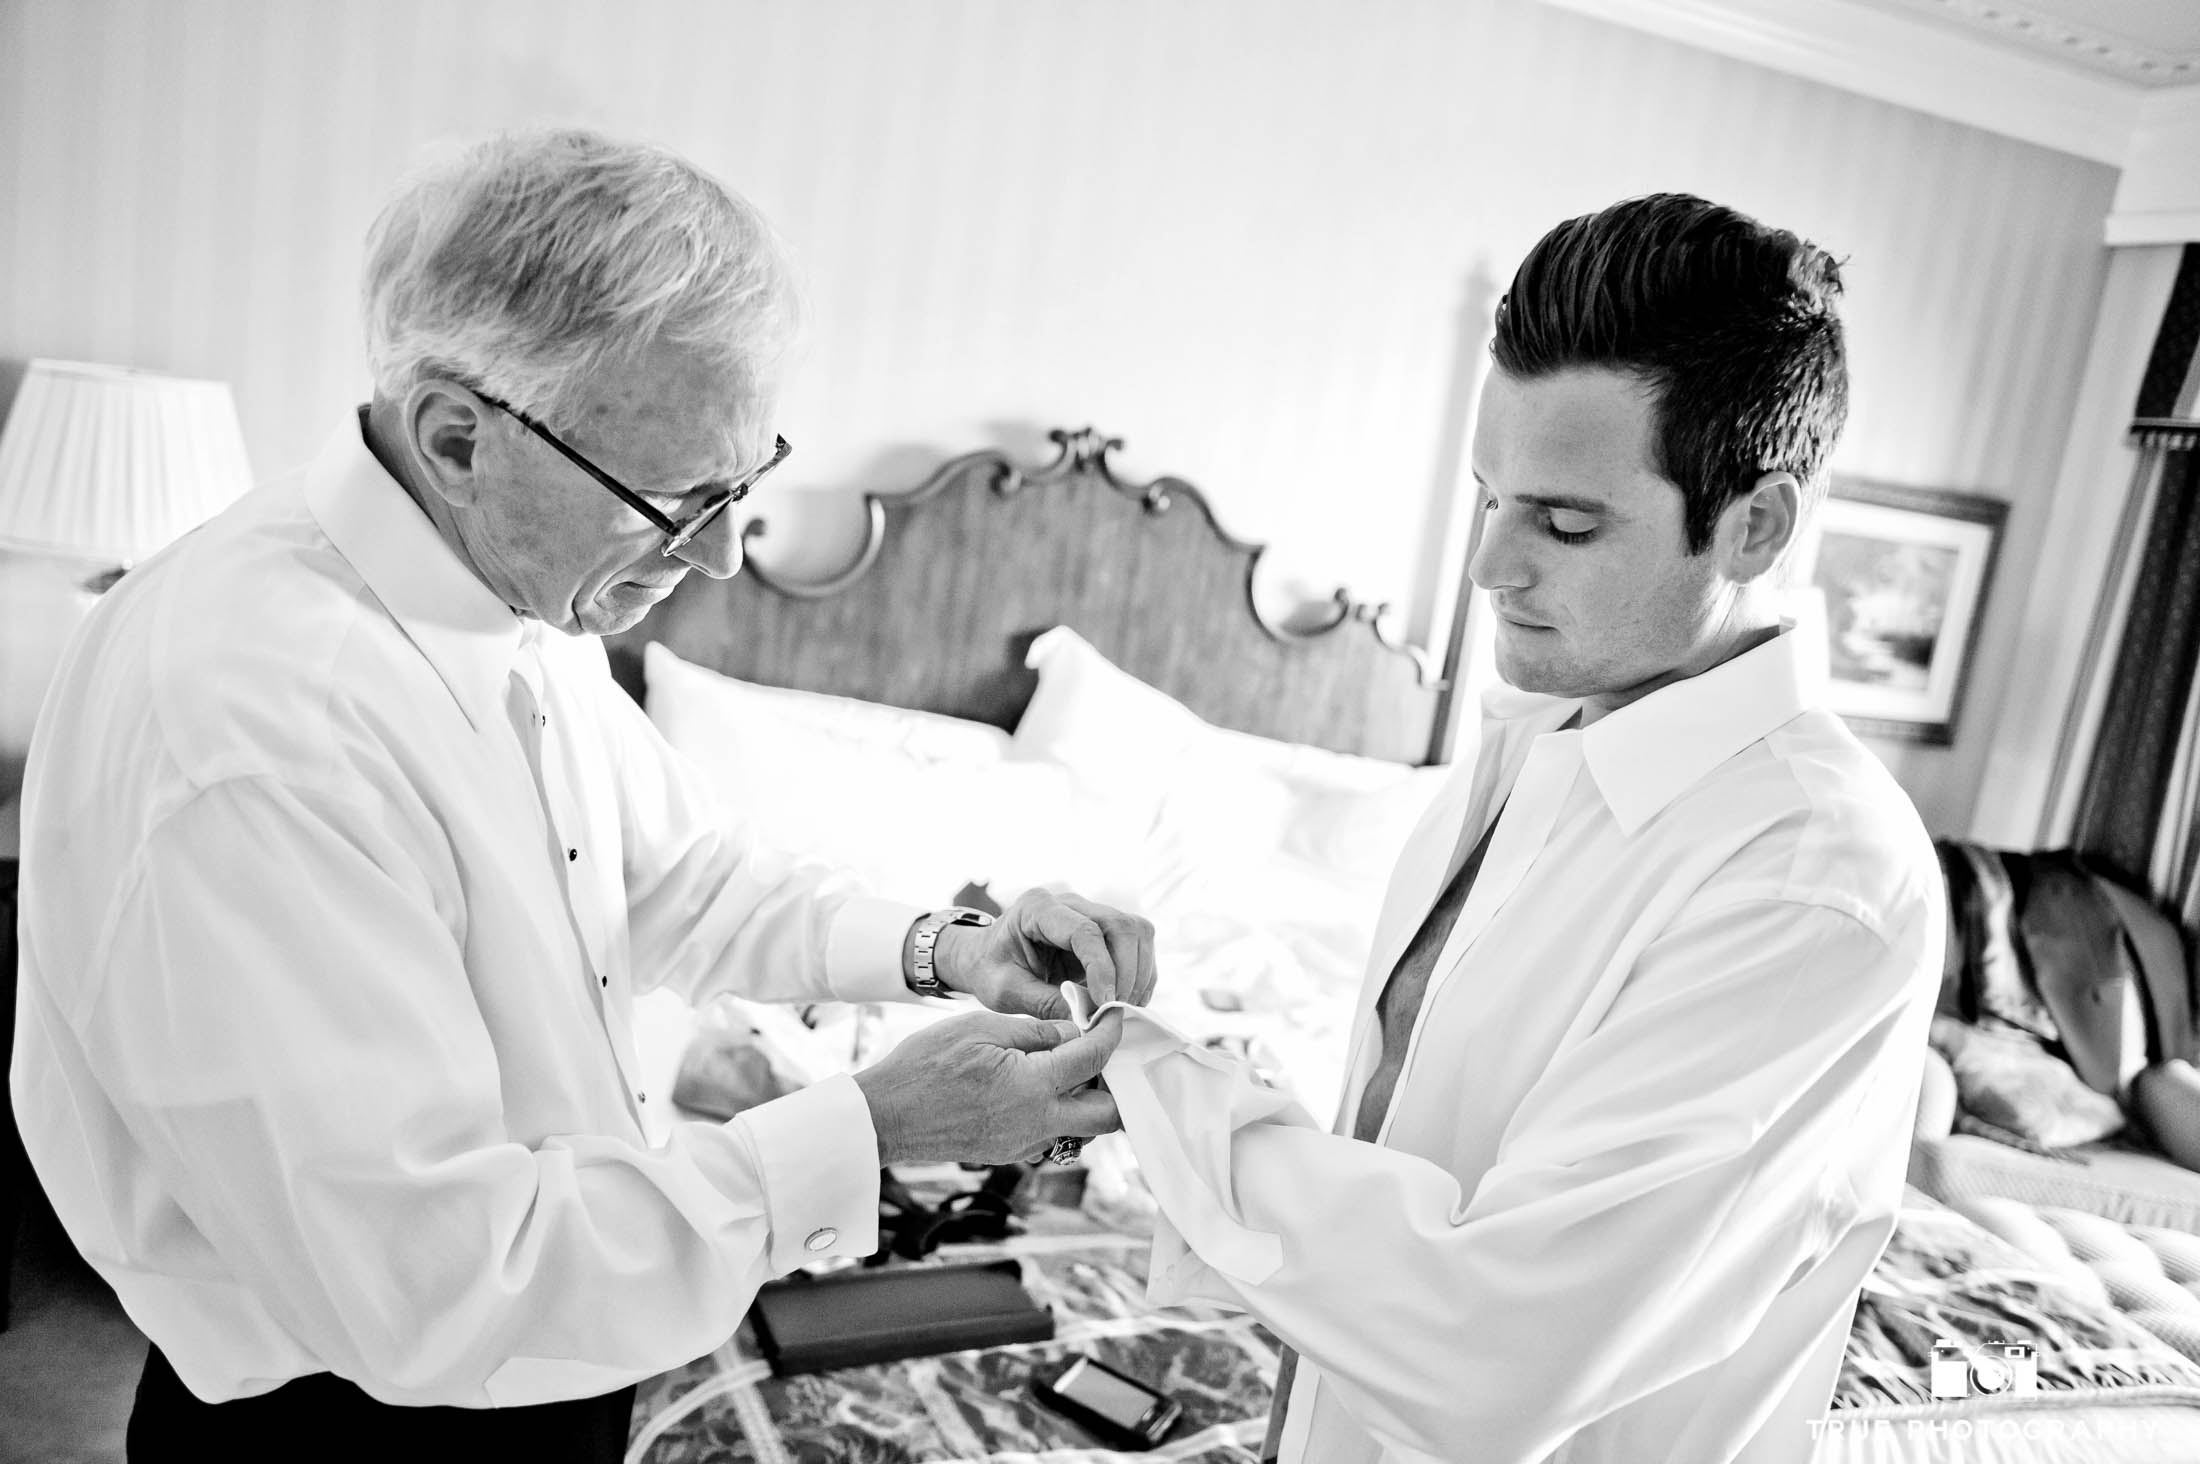 Groom's Father helps put on Cufflinks during Pre-Ceremony